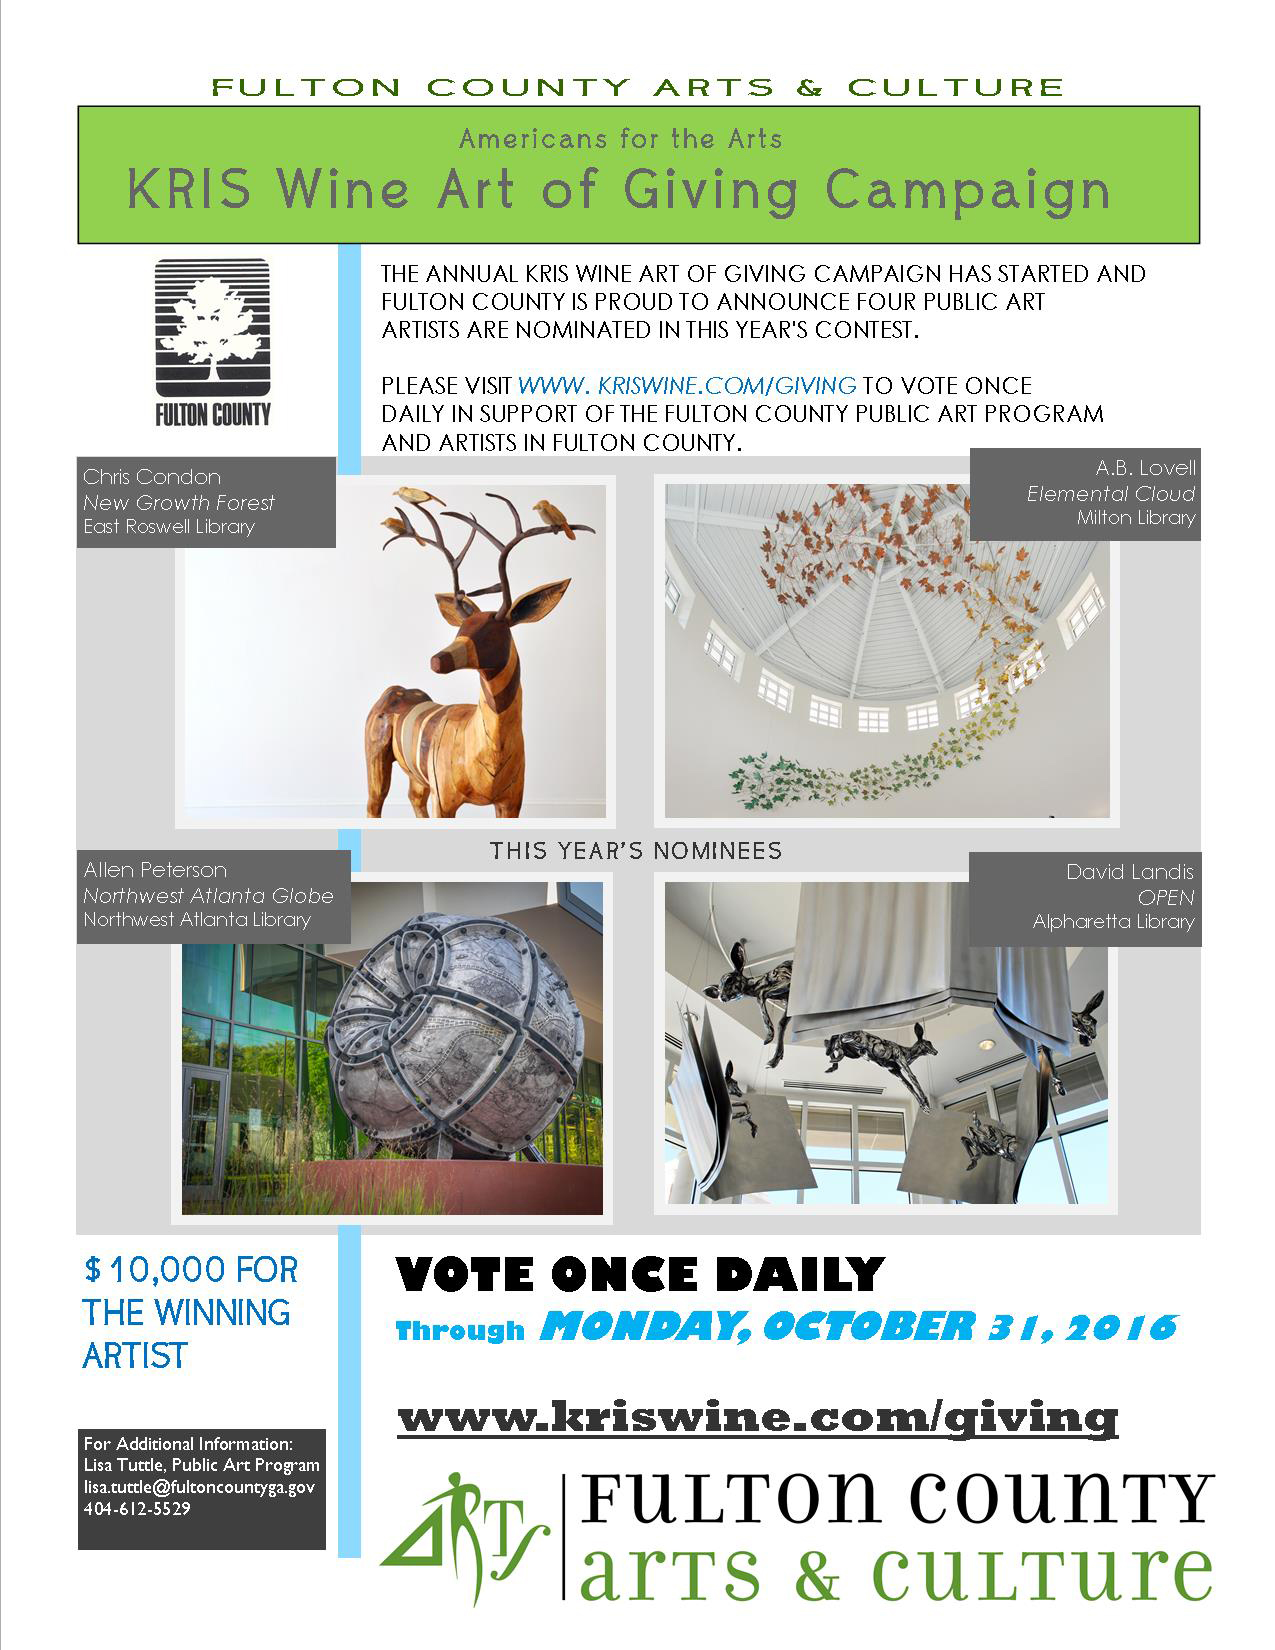 an event flyer with images of vartious artworks to vote on